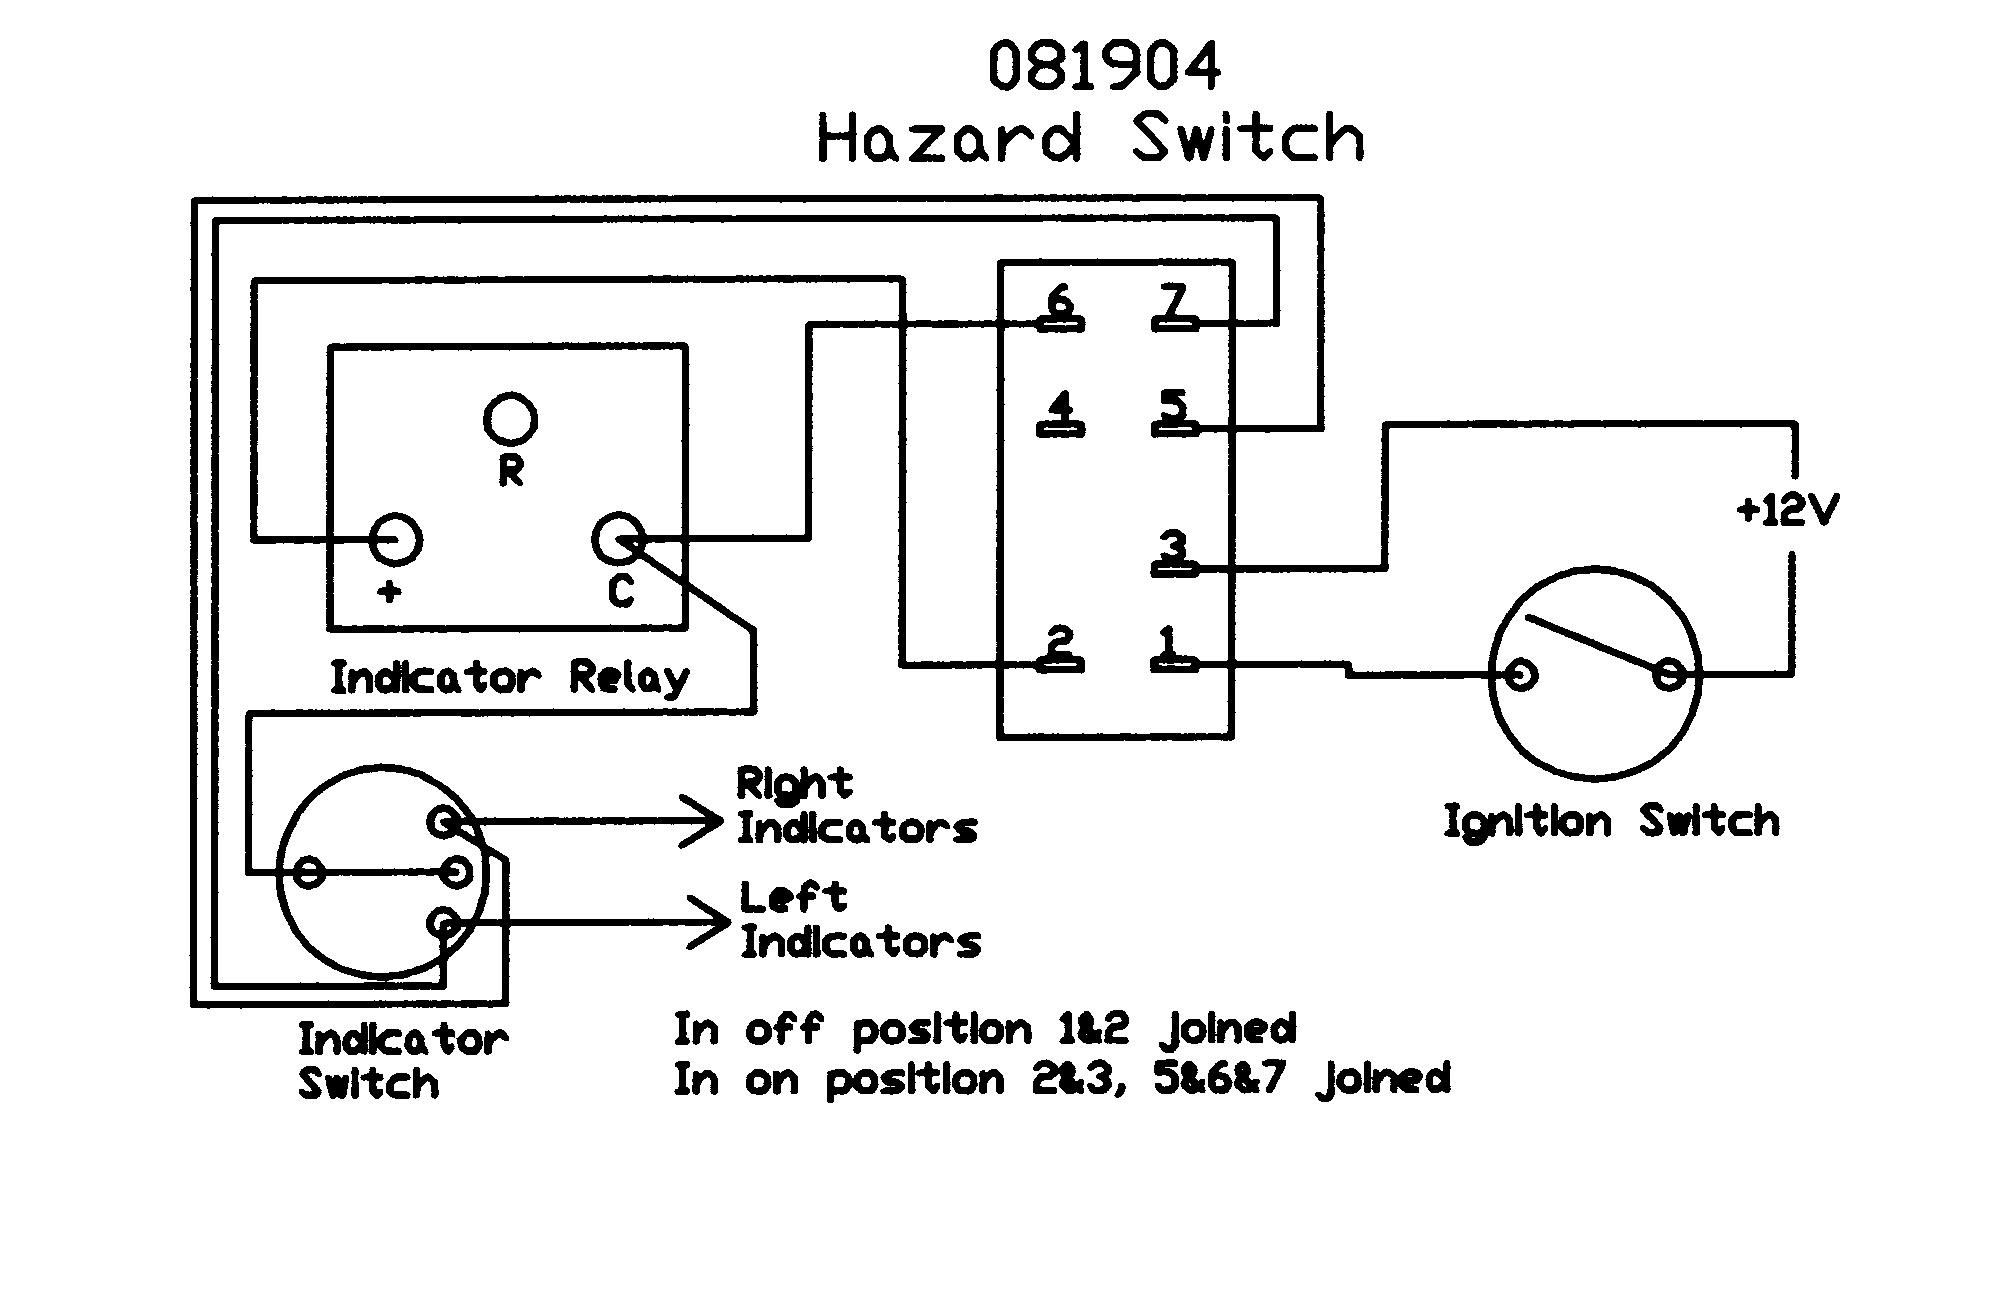 081904_wiring_diagram caterham wiring diagram hvac wiring diagrams \u2022 wiring diagrams j hazard warning switch wiring diagram at webbmarketing.co